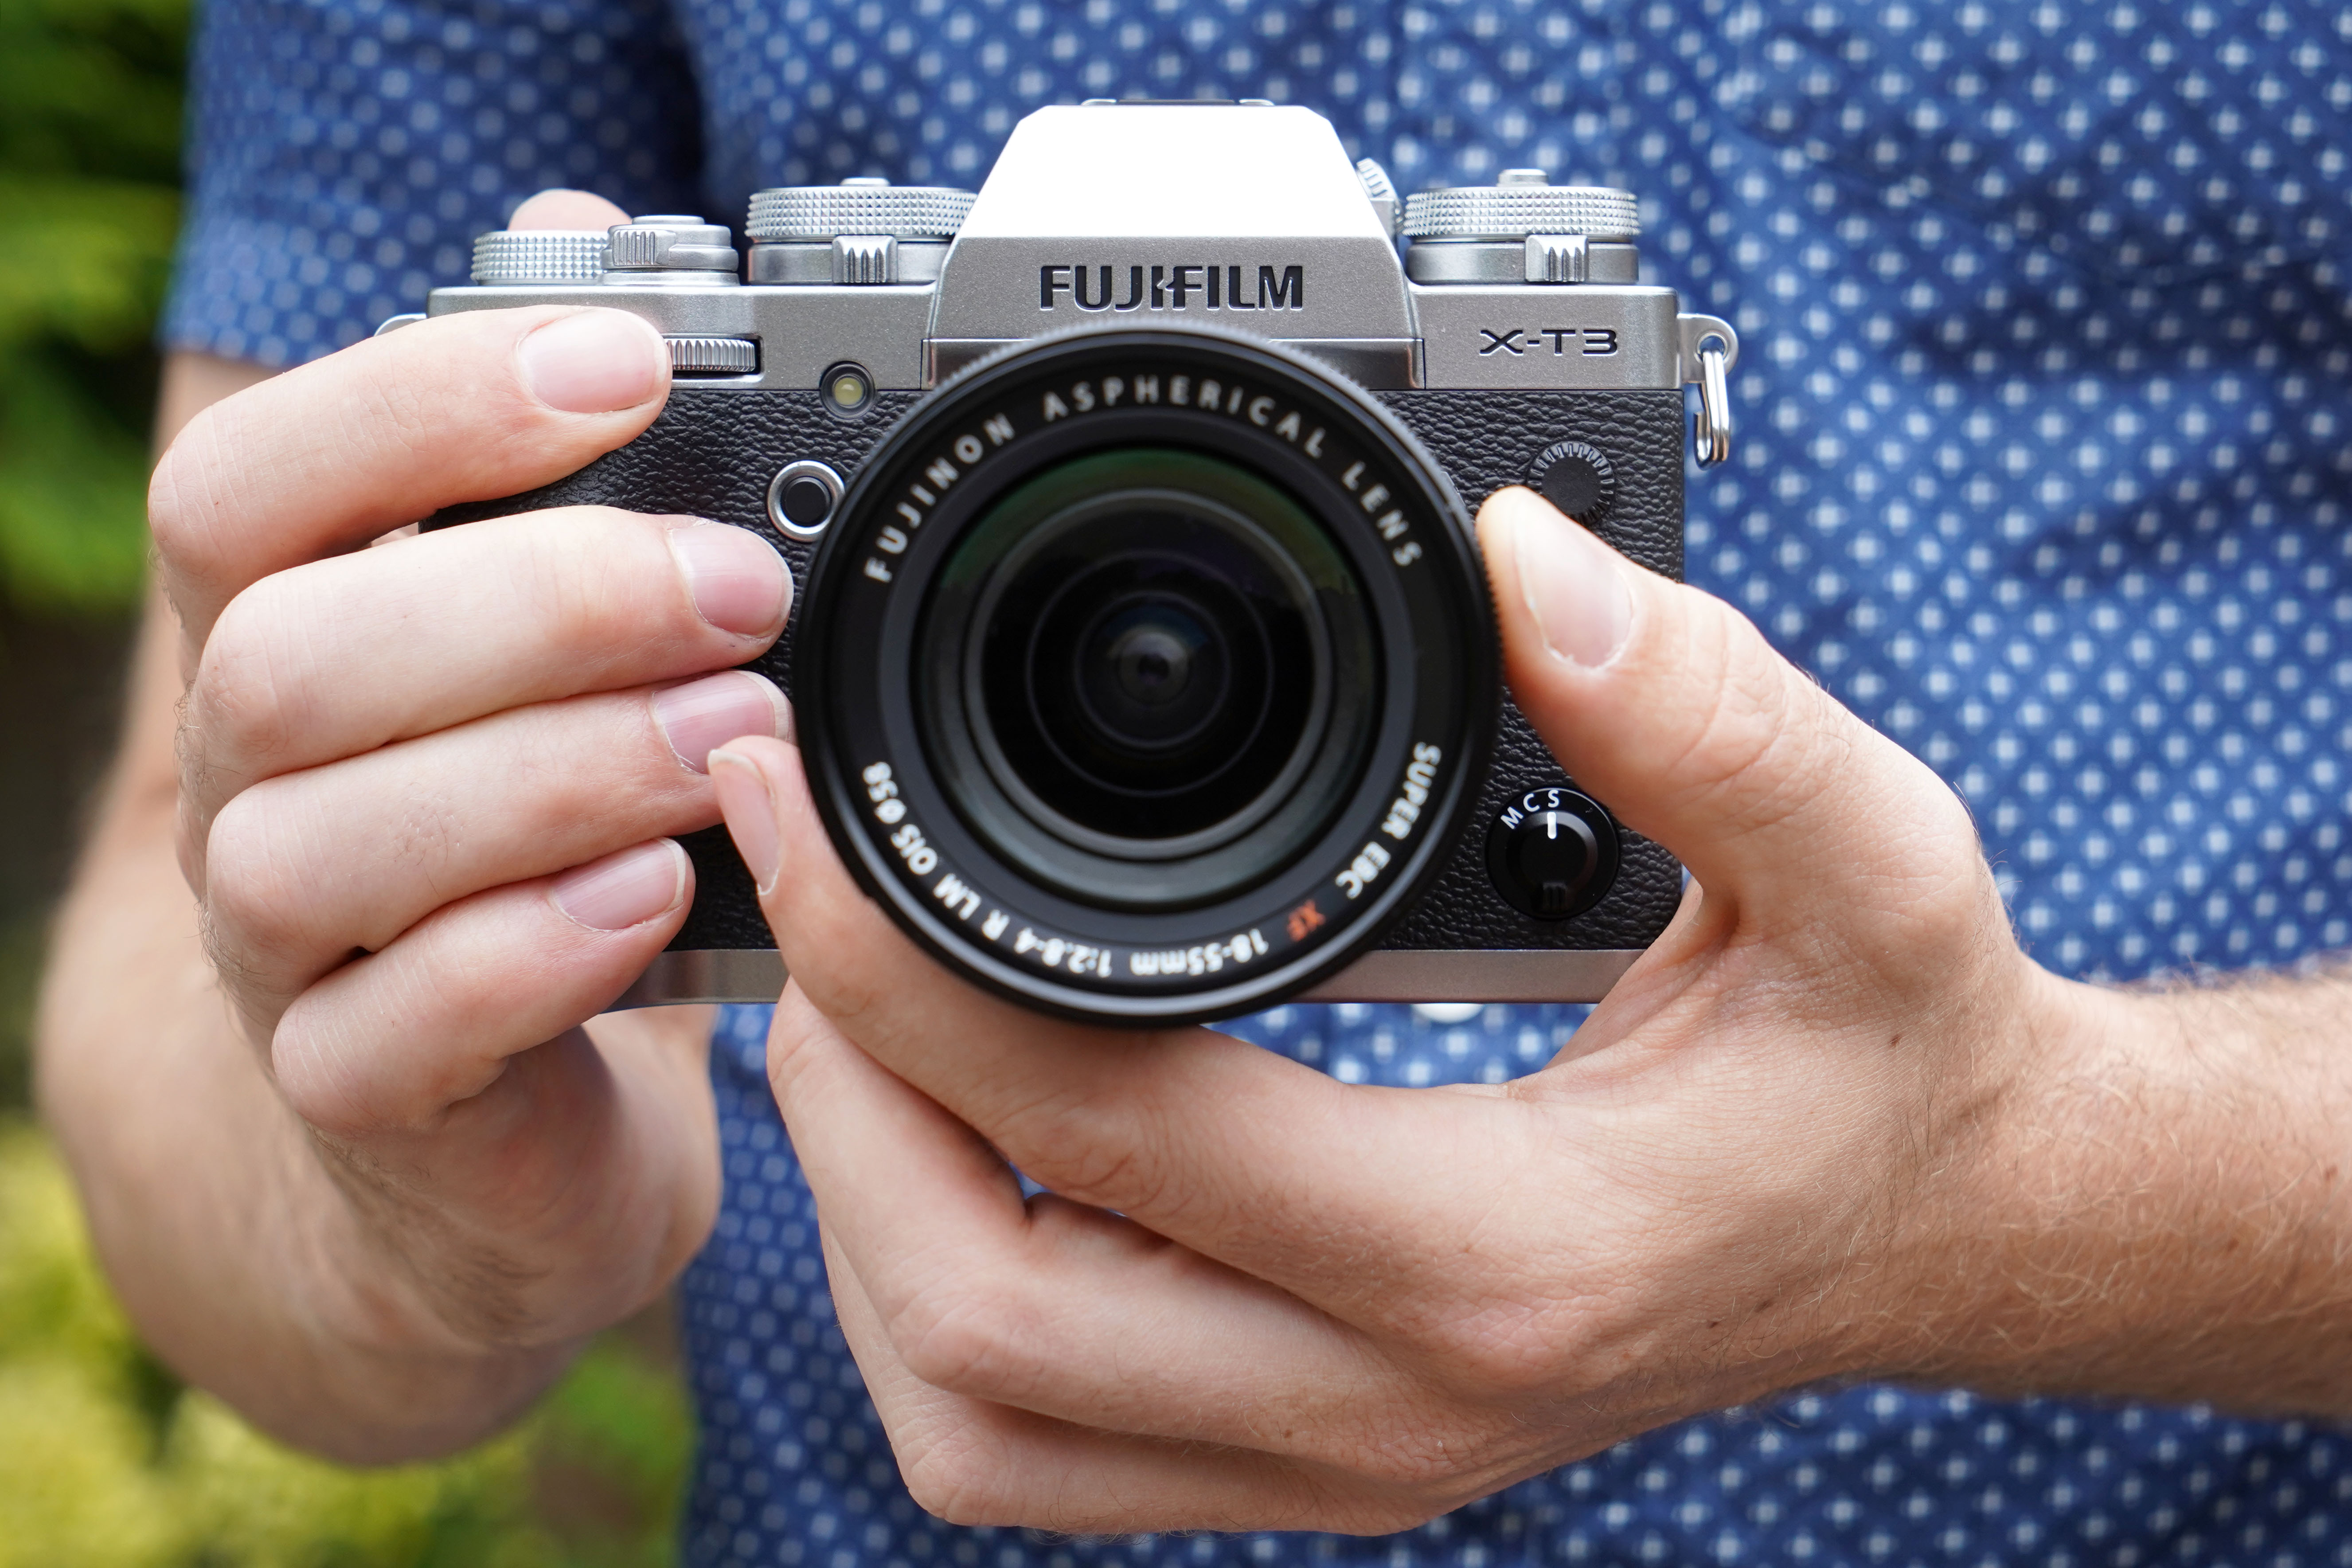 Fujifilm X-T3 sample image gallery – updated